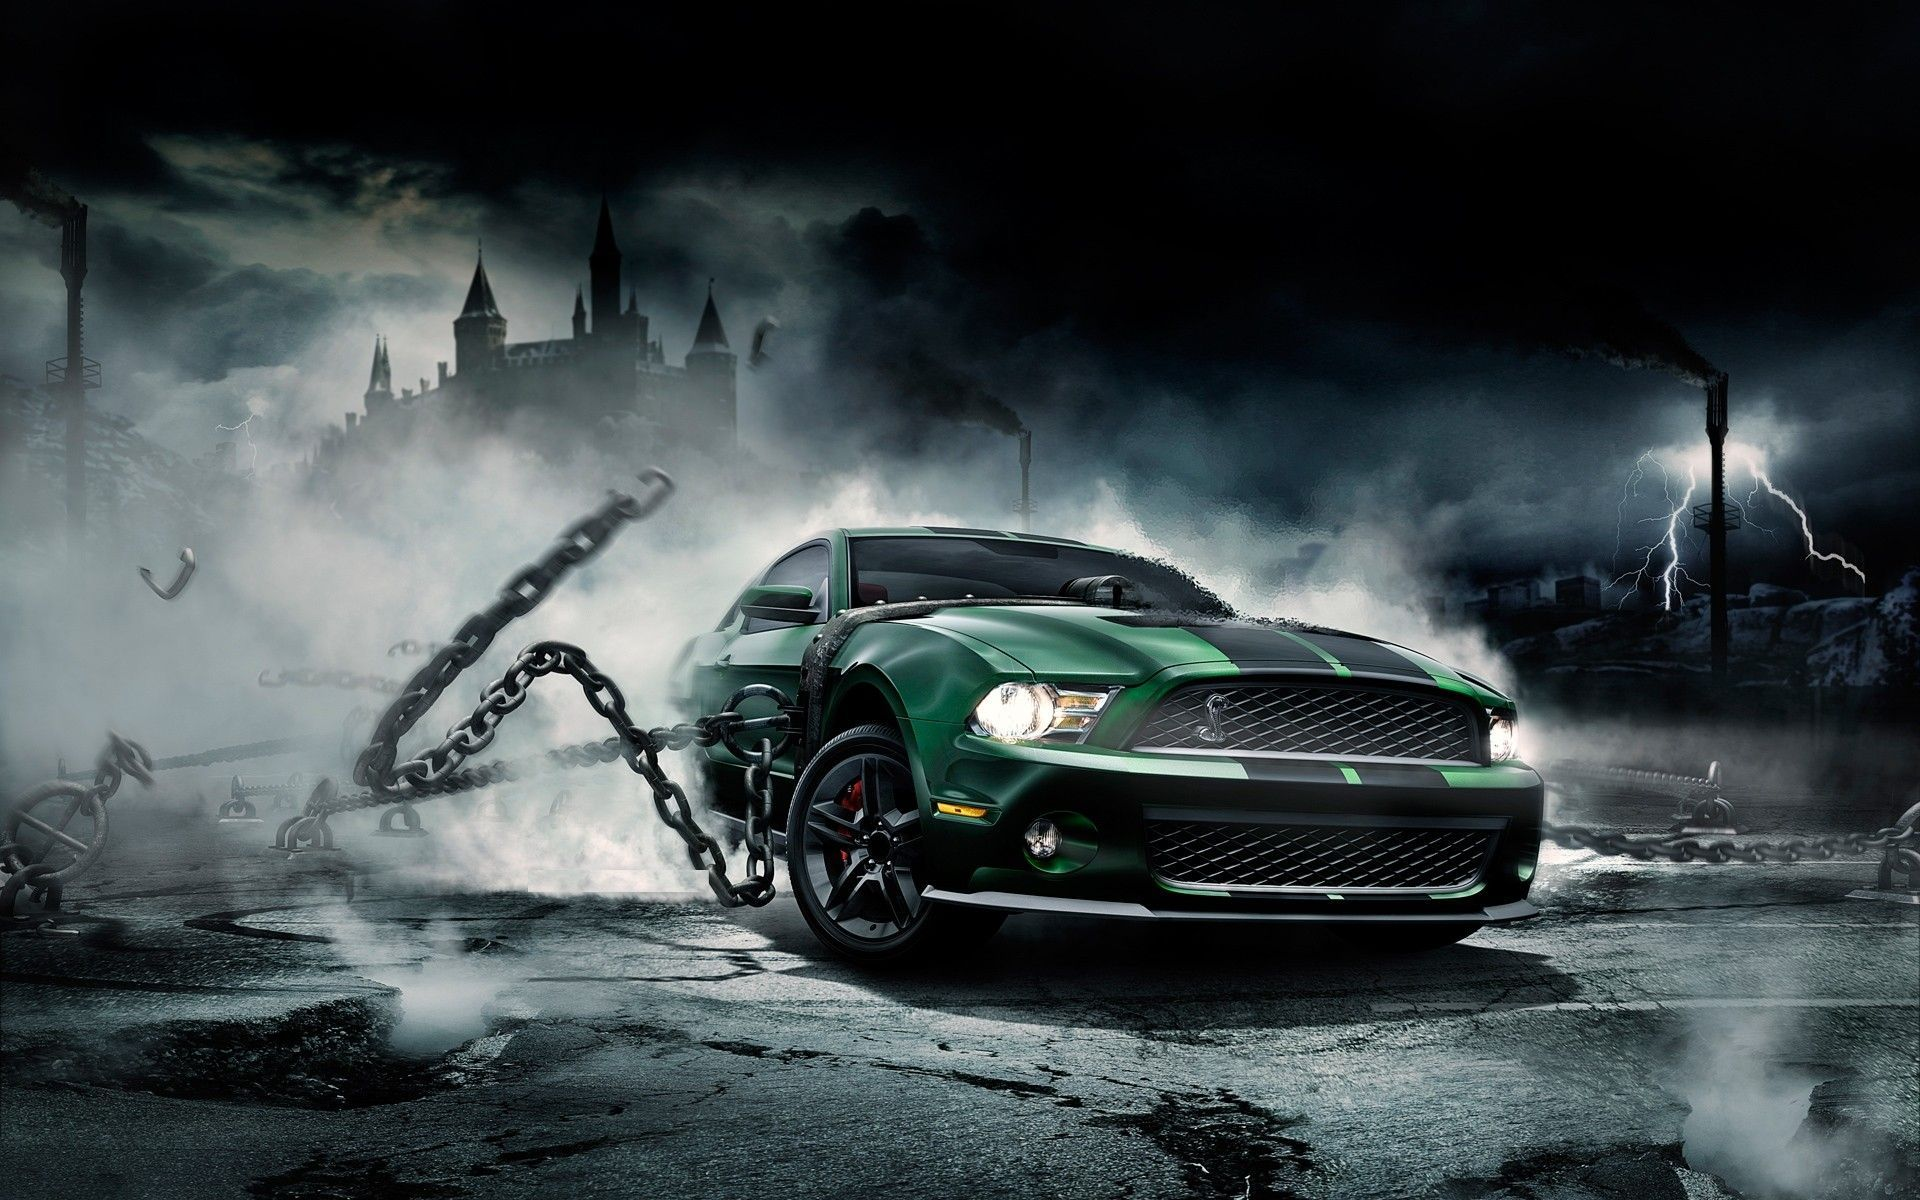 Hd Wallpaper For Pc 1920x1080 Free Download 2 Mustang Wallpaper Car Wallpapers Wallpaper Pc